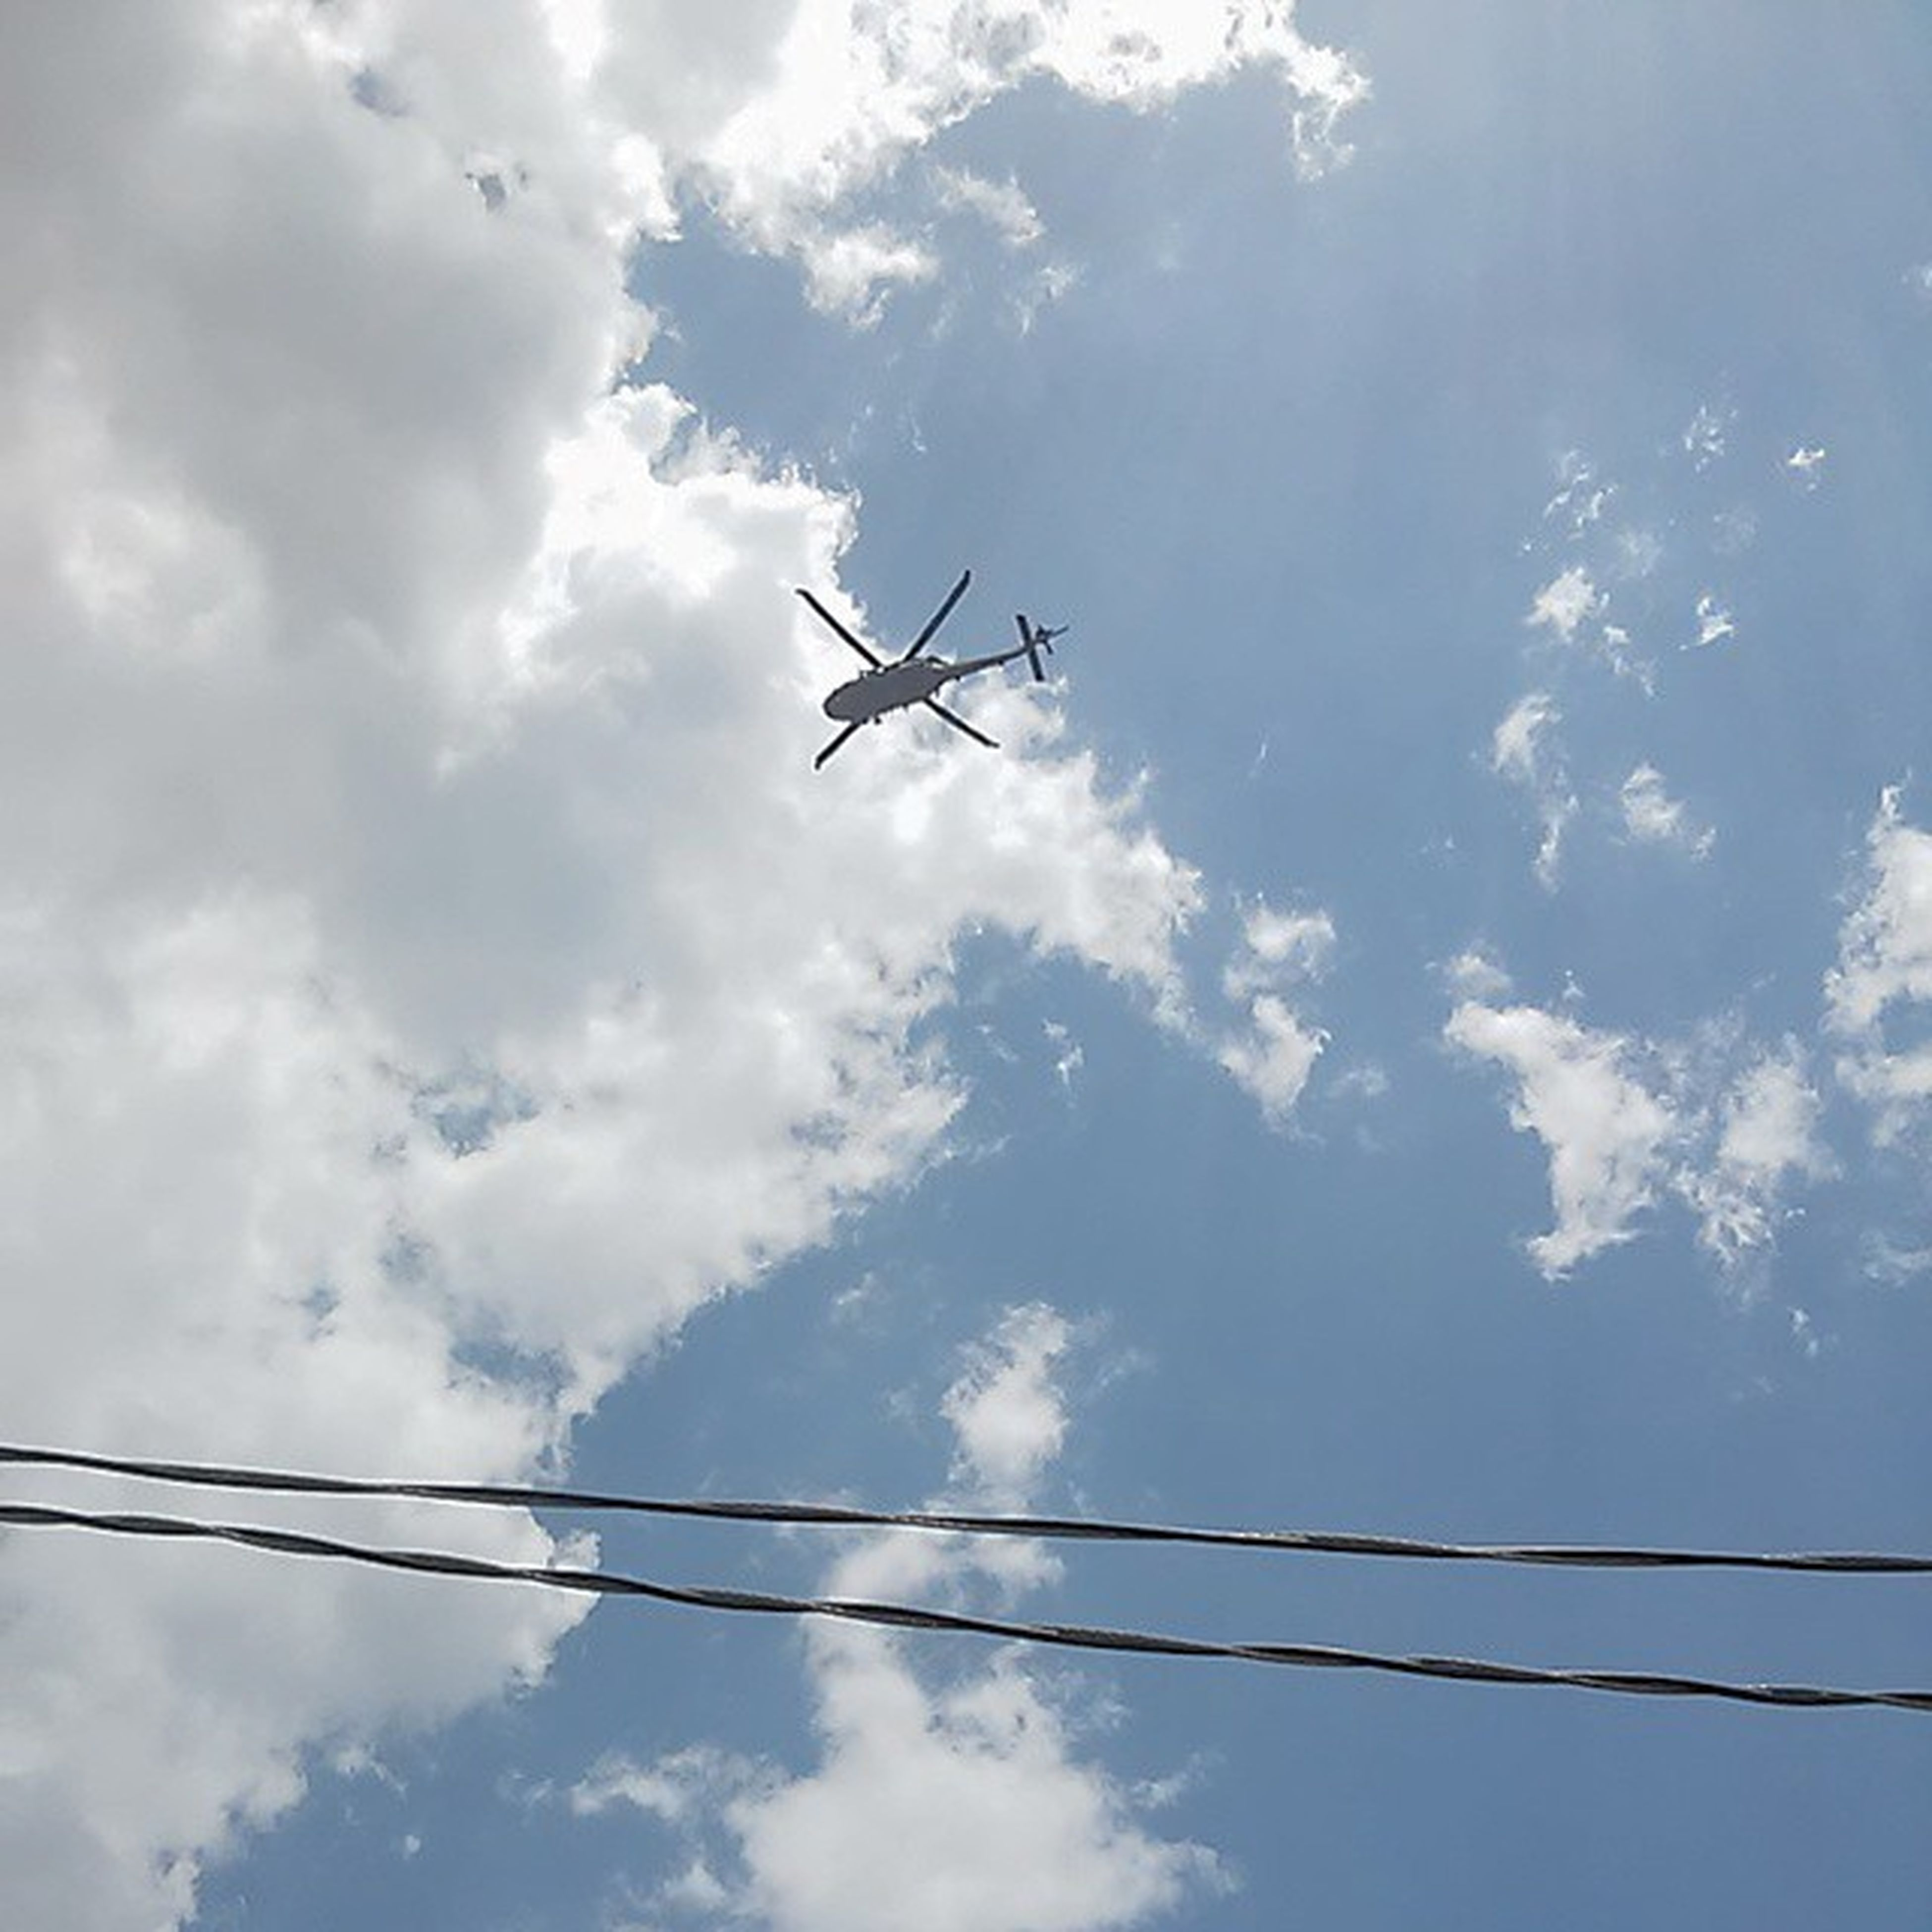 low angle view, sky, airplane, flying, transportation, air vehicle, cloud - sky, mode of transport, cloudy, cloud, blue, journey, day, mid-air, outdoors, nature, technology, power line, no people, electricity